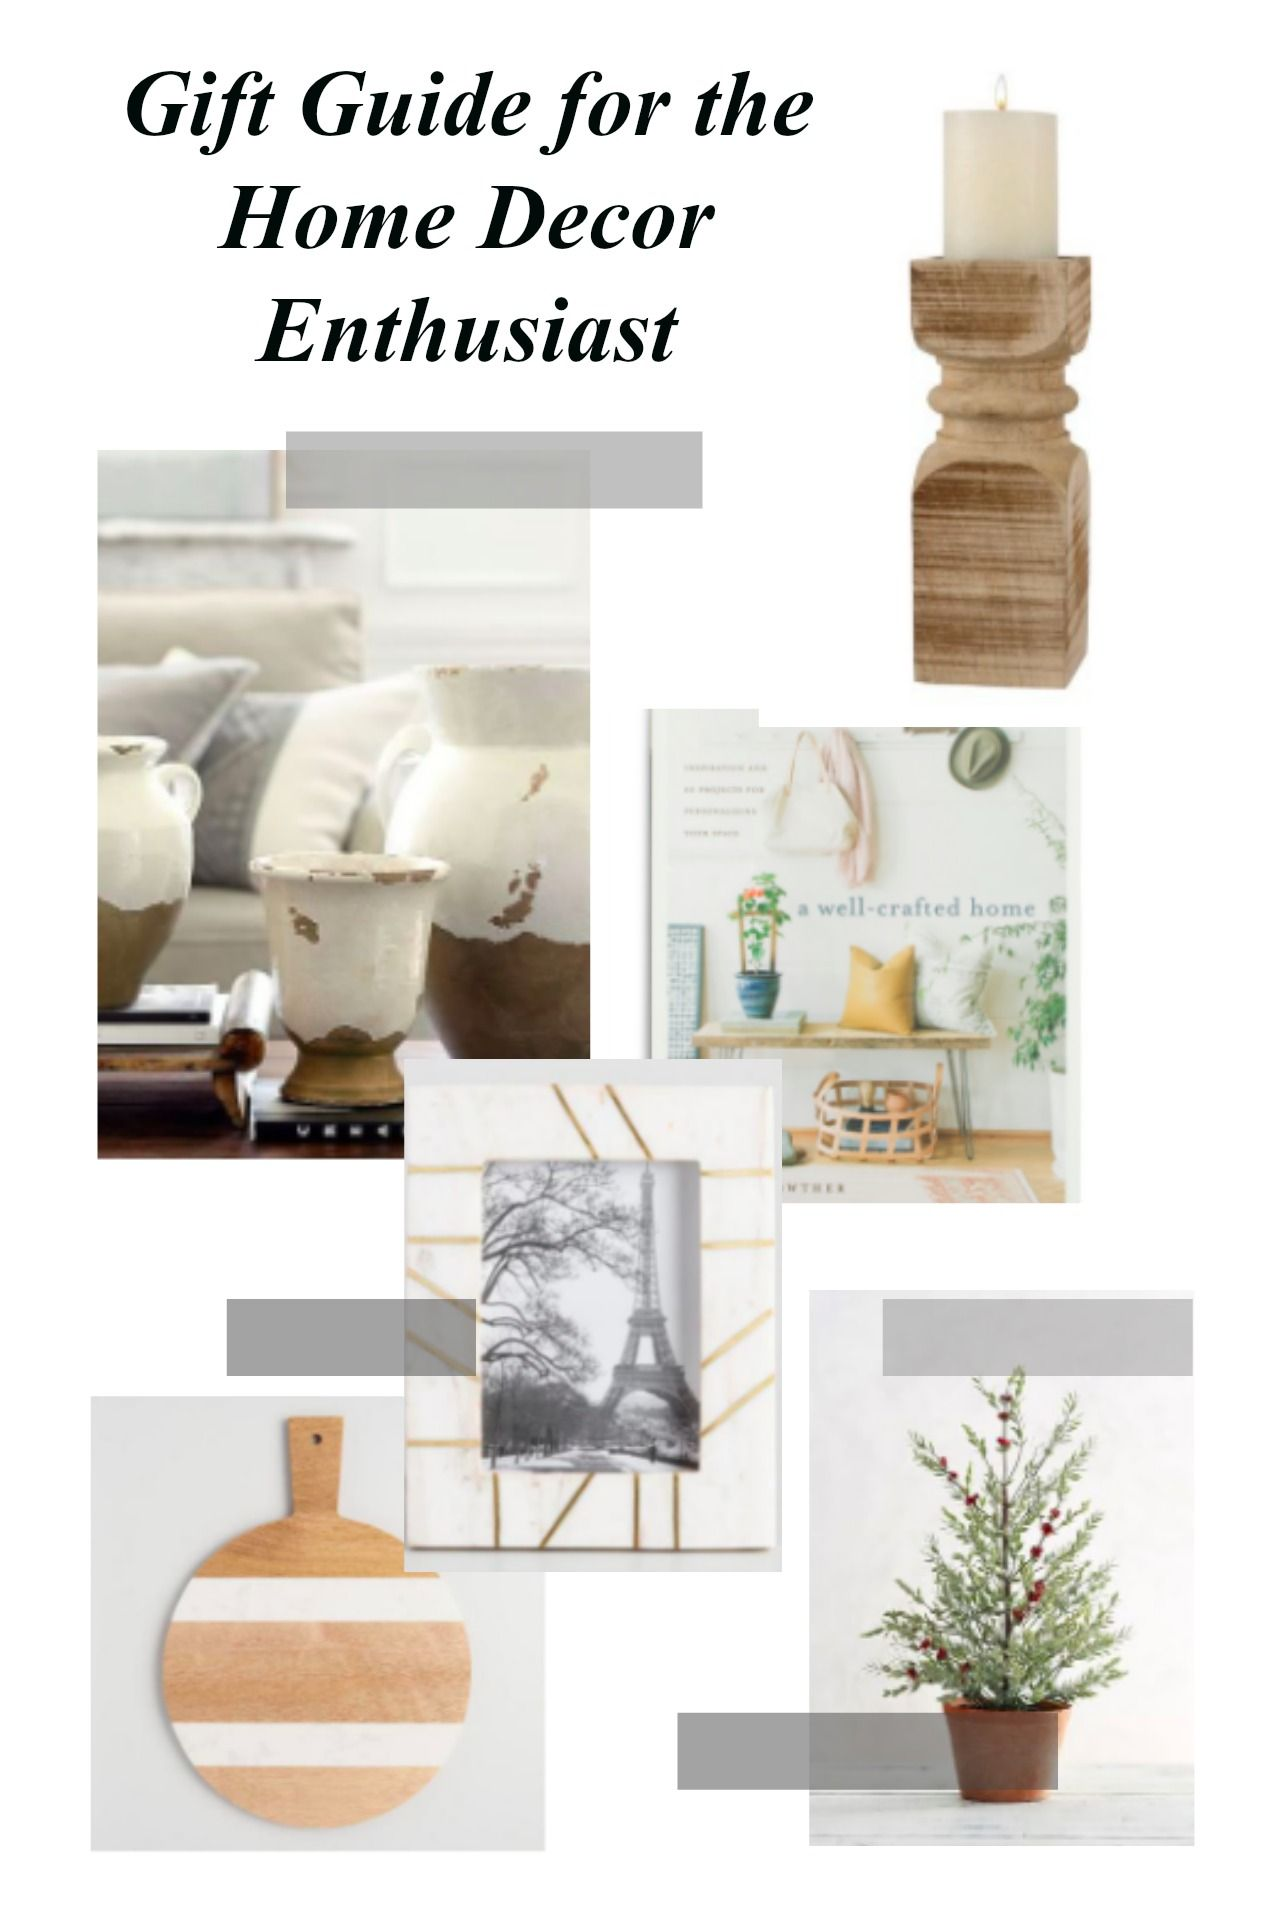 Gift Guide For The Home Decor Enthusiast Home Decor Decor Home